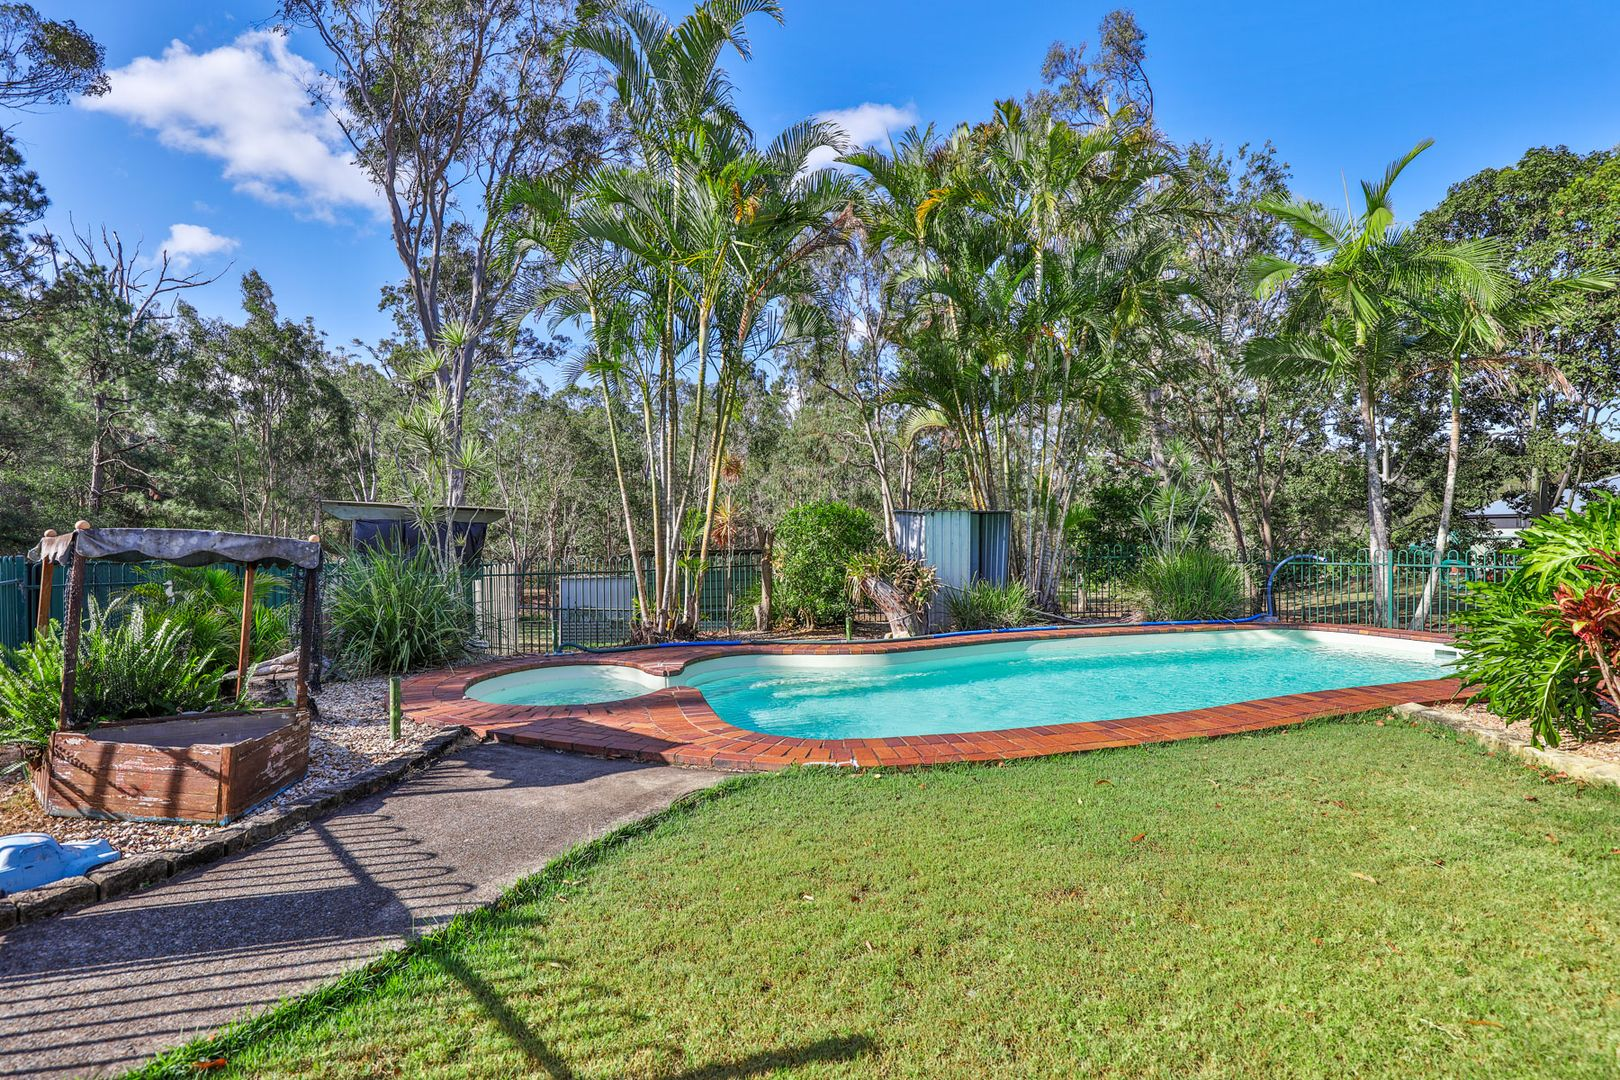 30-34 Sheree Court, Buccan QLD 4207, Image 1